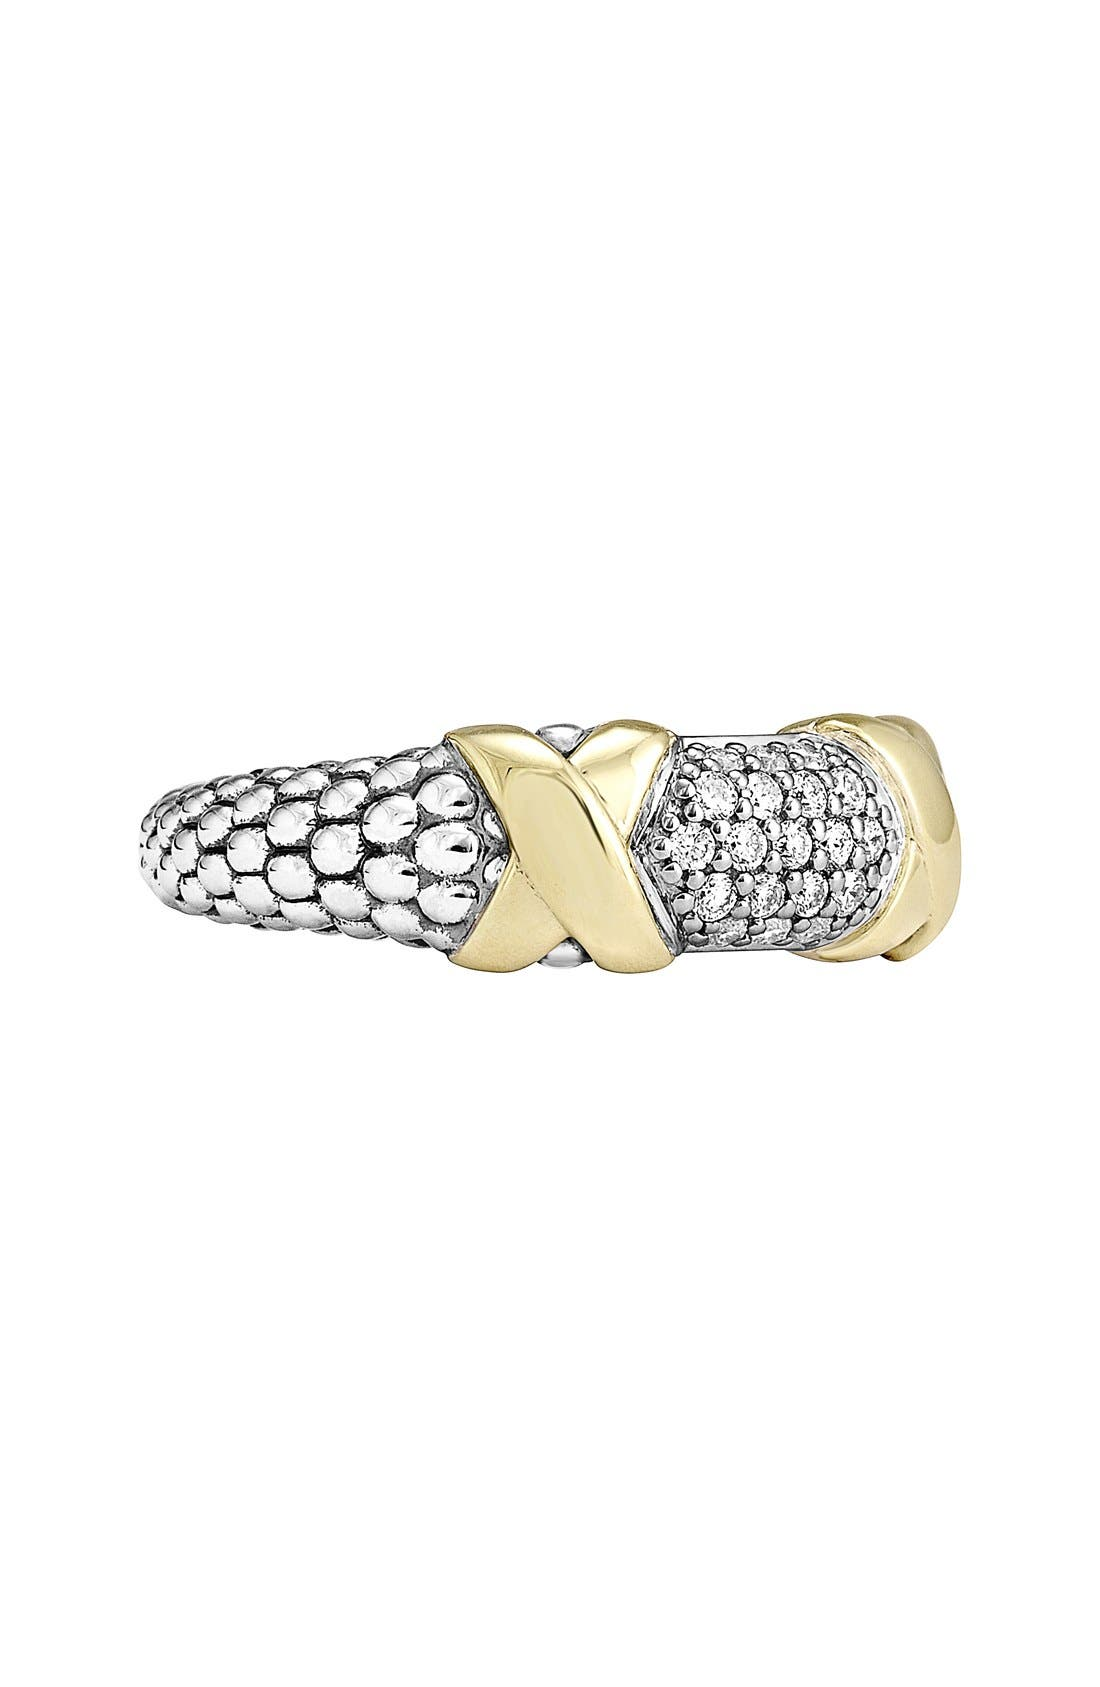 'Diamond Luxe' Ring,                             Alternate thumbnail 4, color,                             Silver/ Gold